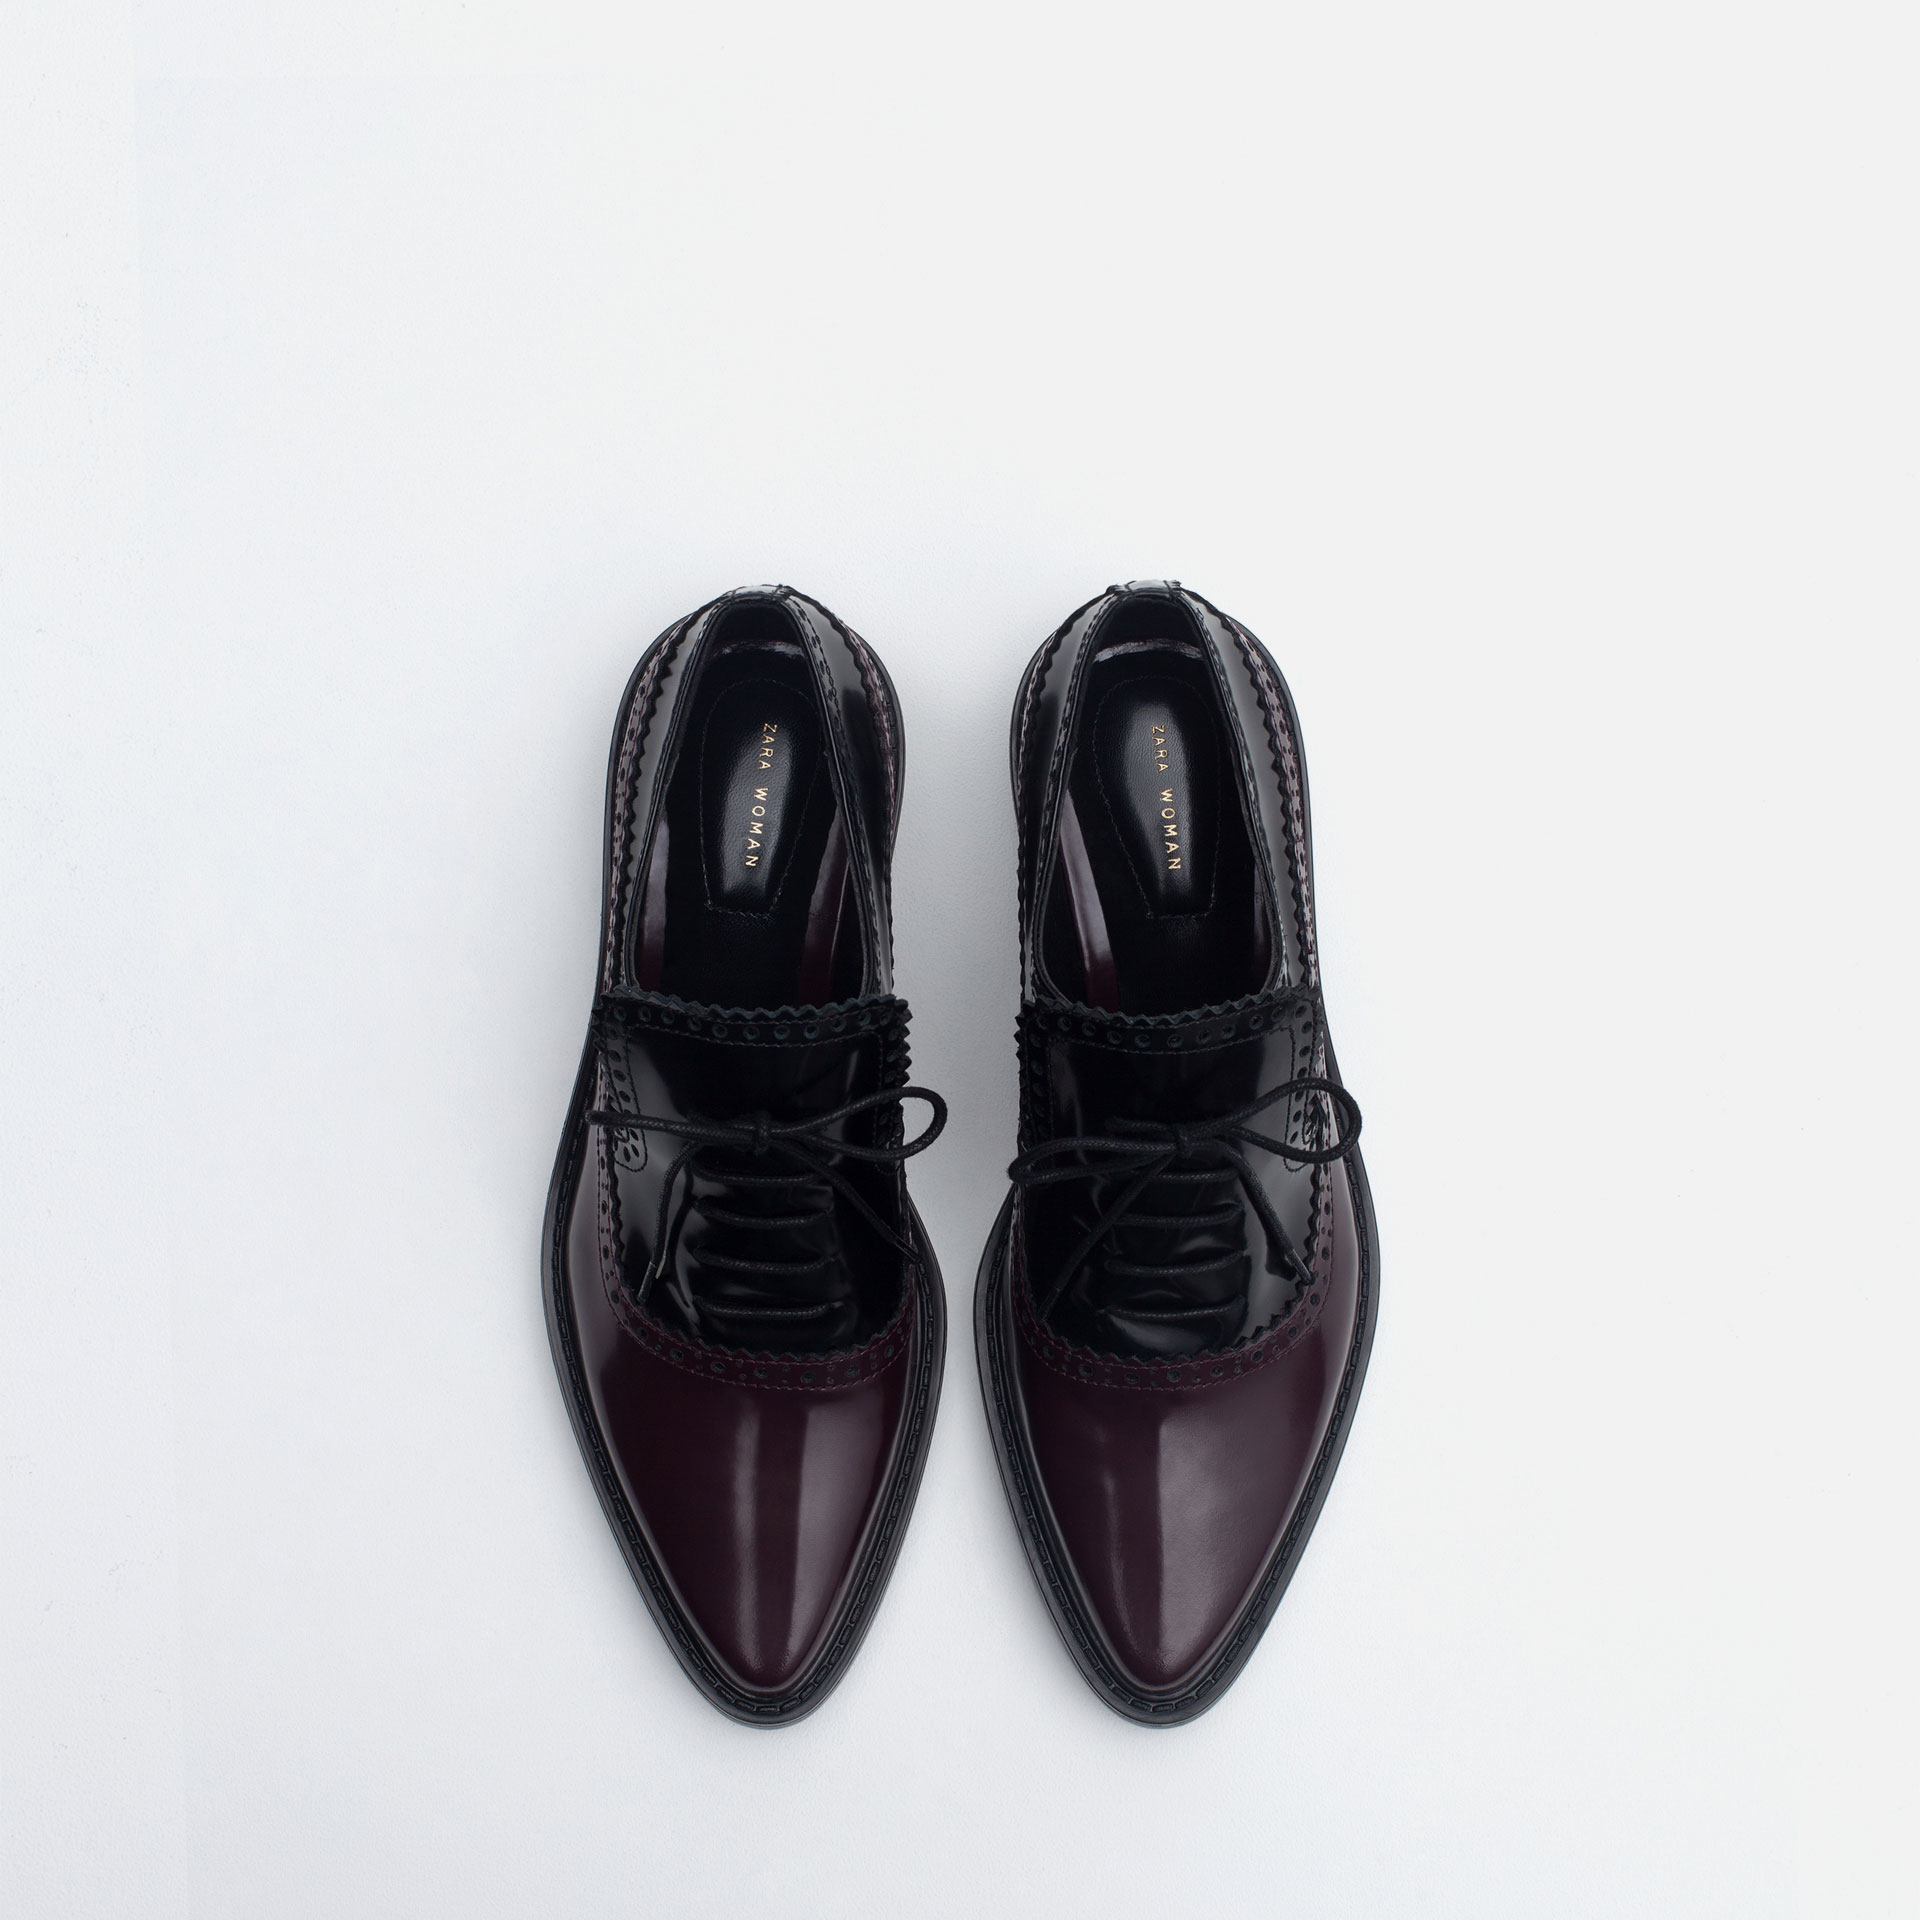 New Zara Glossy Flat Shoes In Black  Lyst